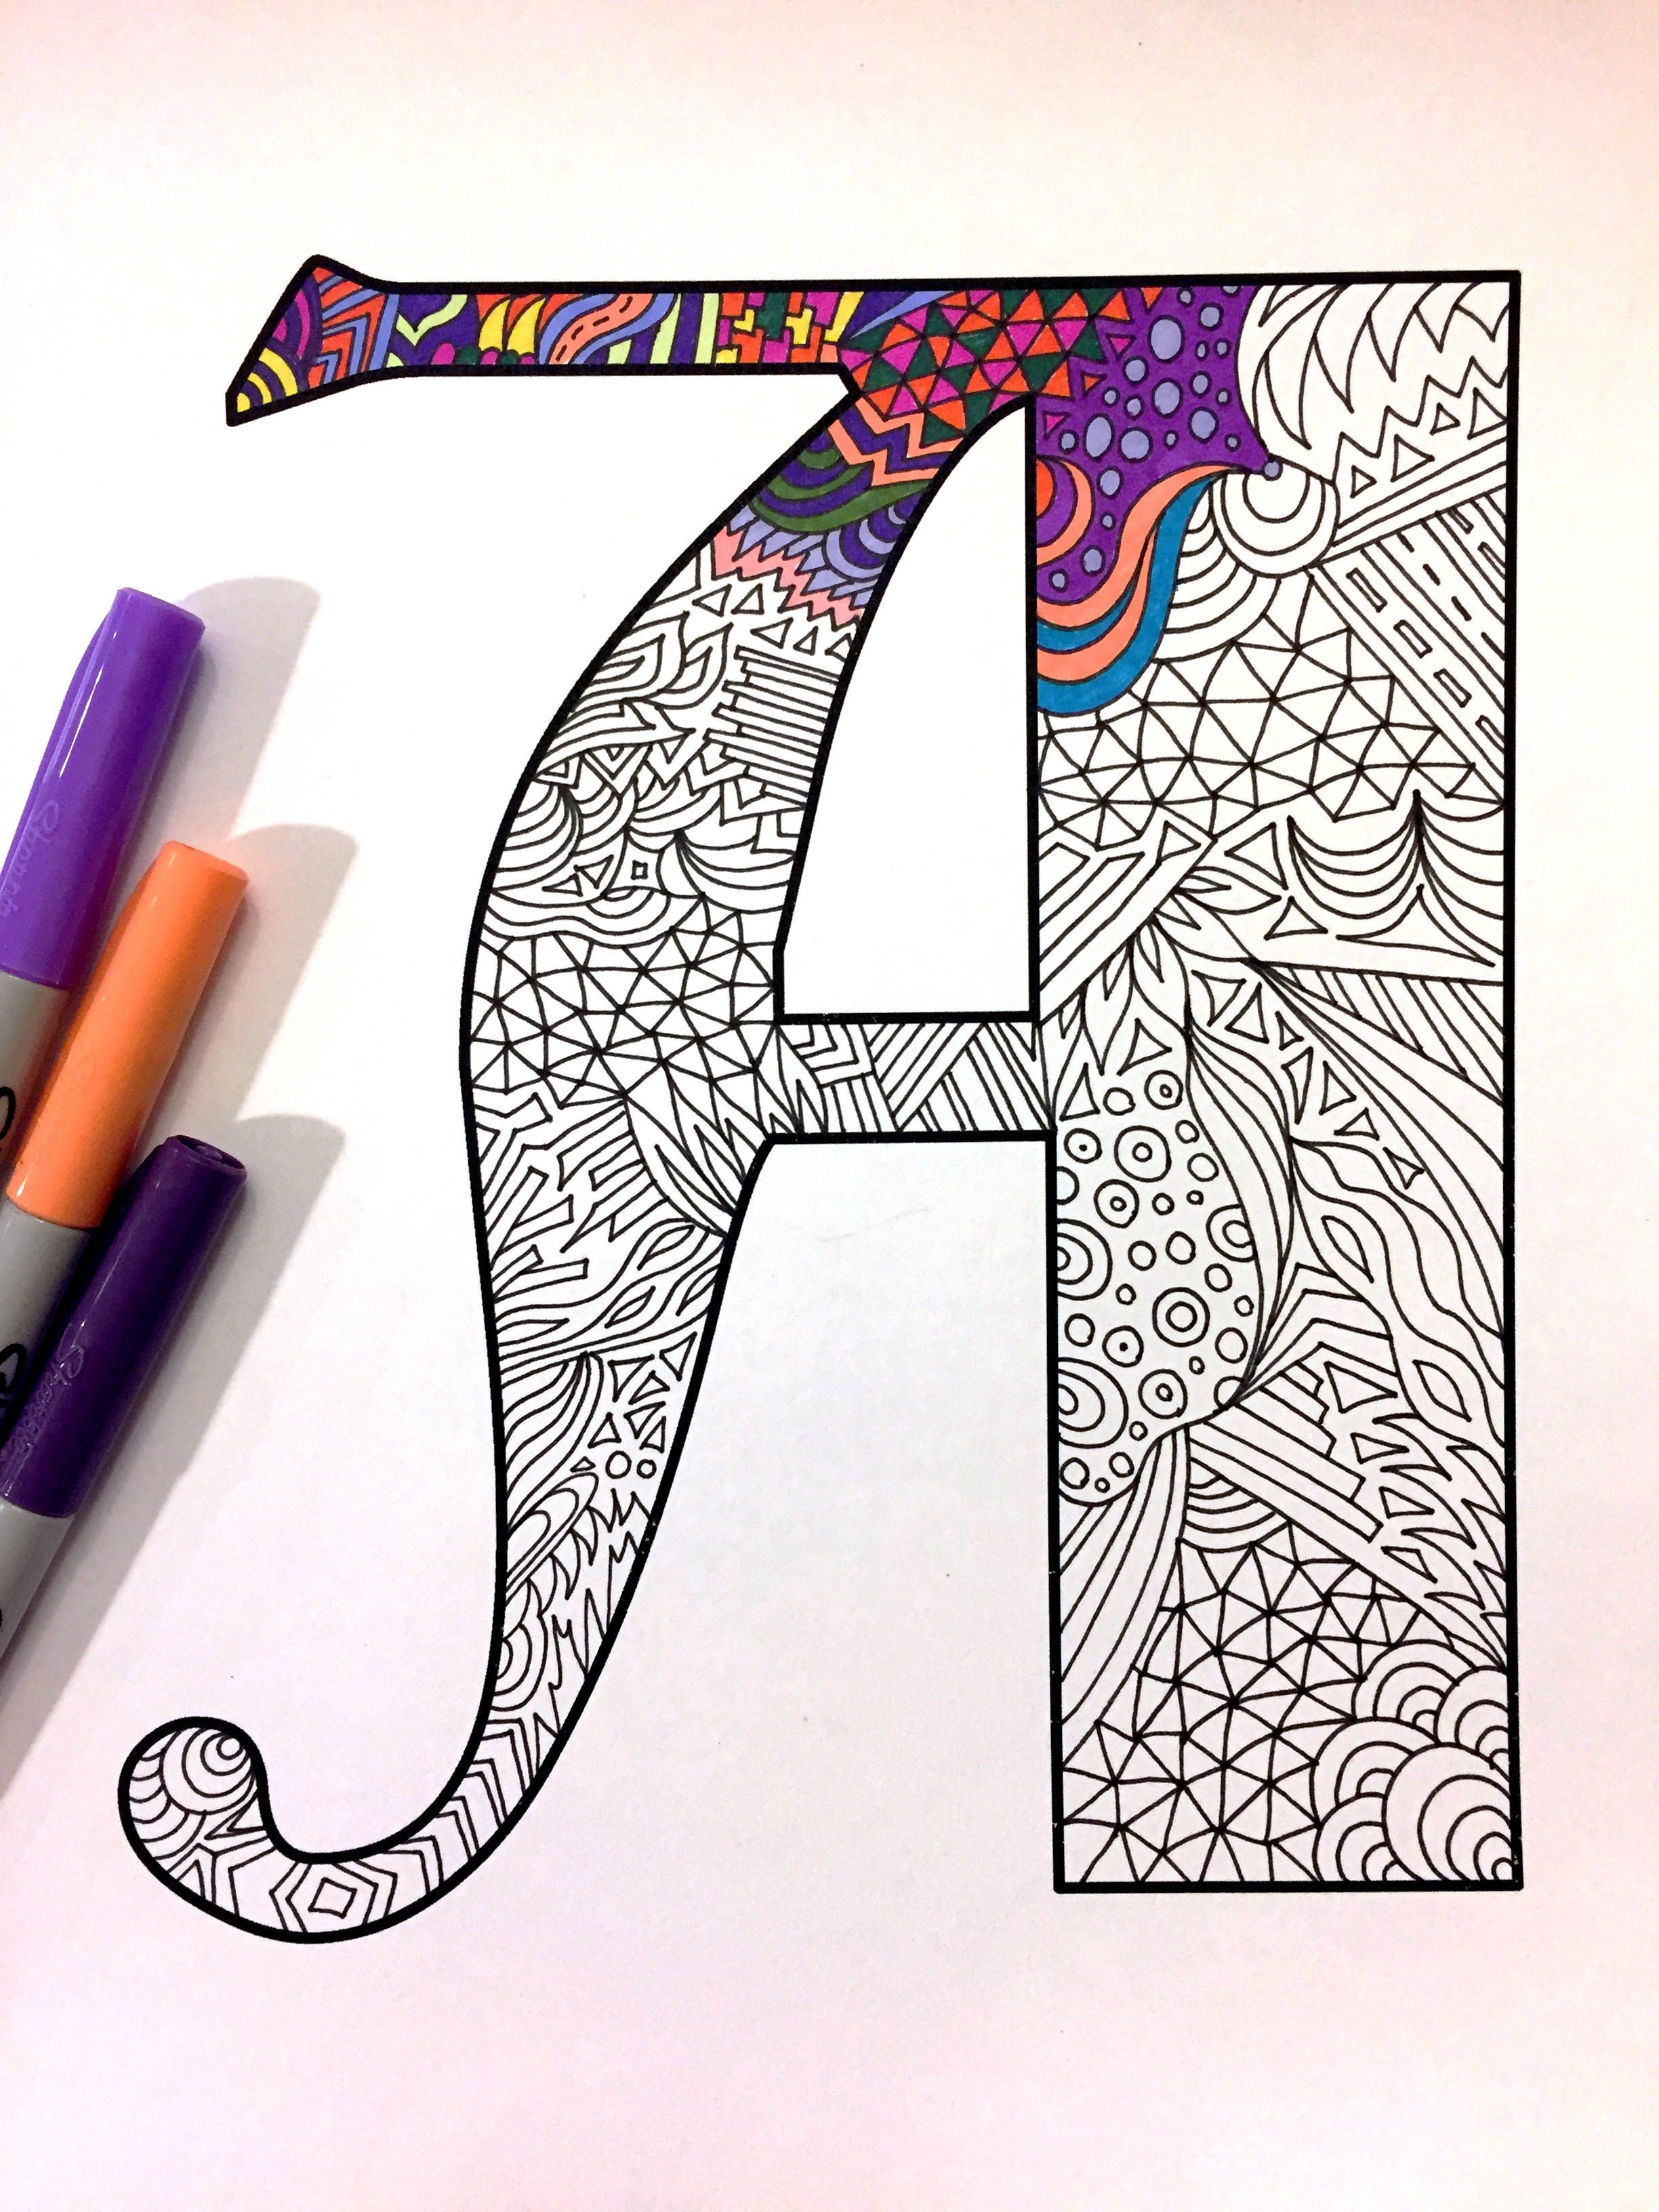 Scribbles Alphabet Nature Flowers Food Emojis And Symbols Coloring Book In 2020 Zentangle Patterns Lettering Coloring Pages